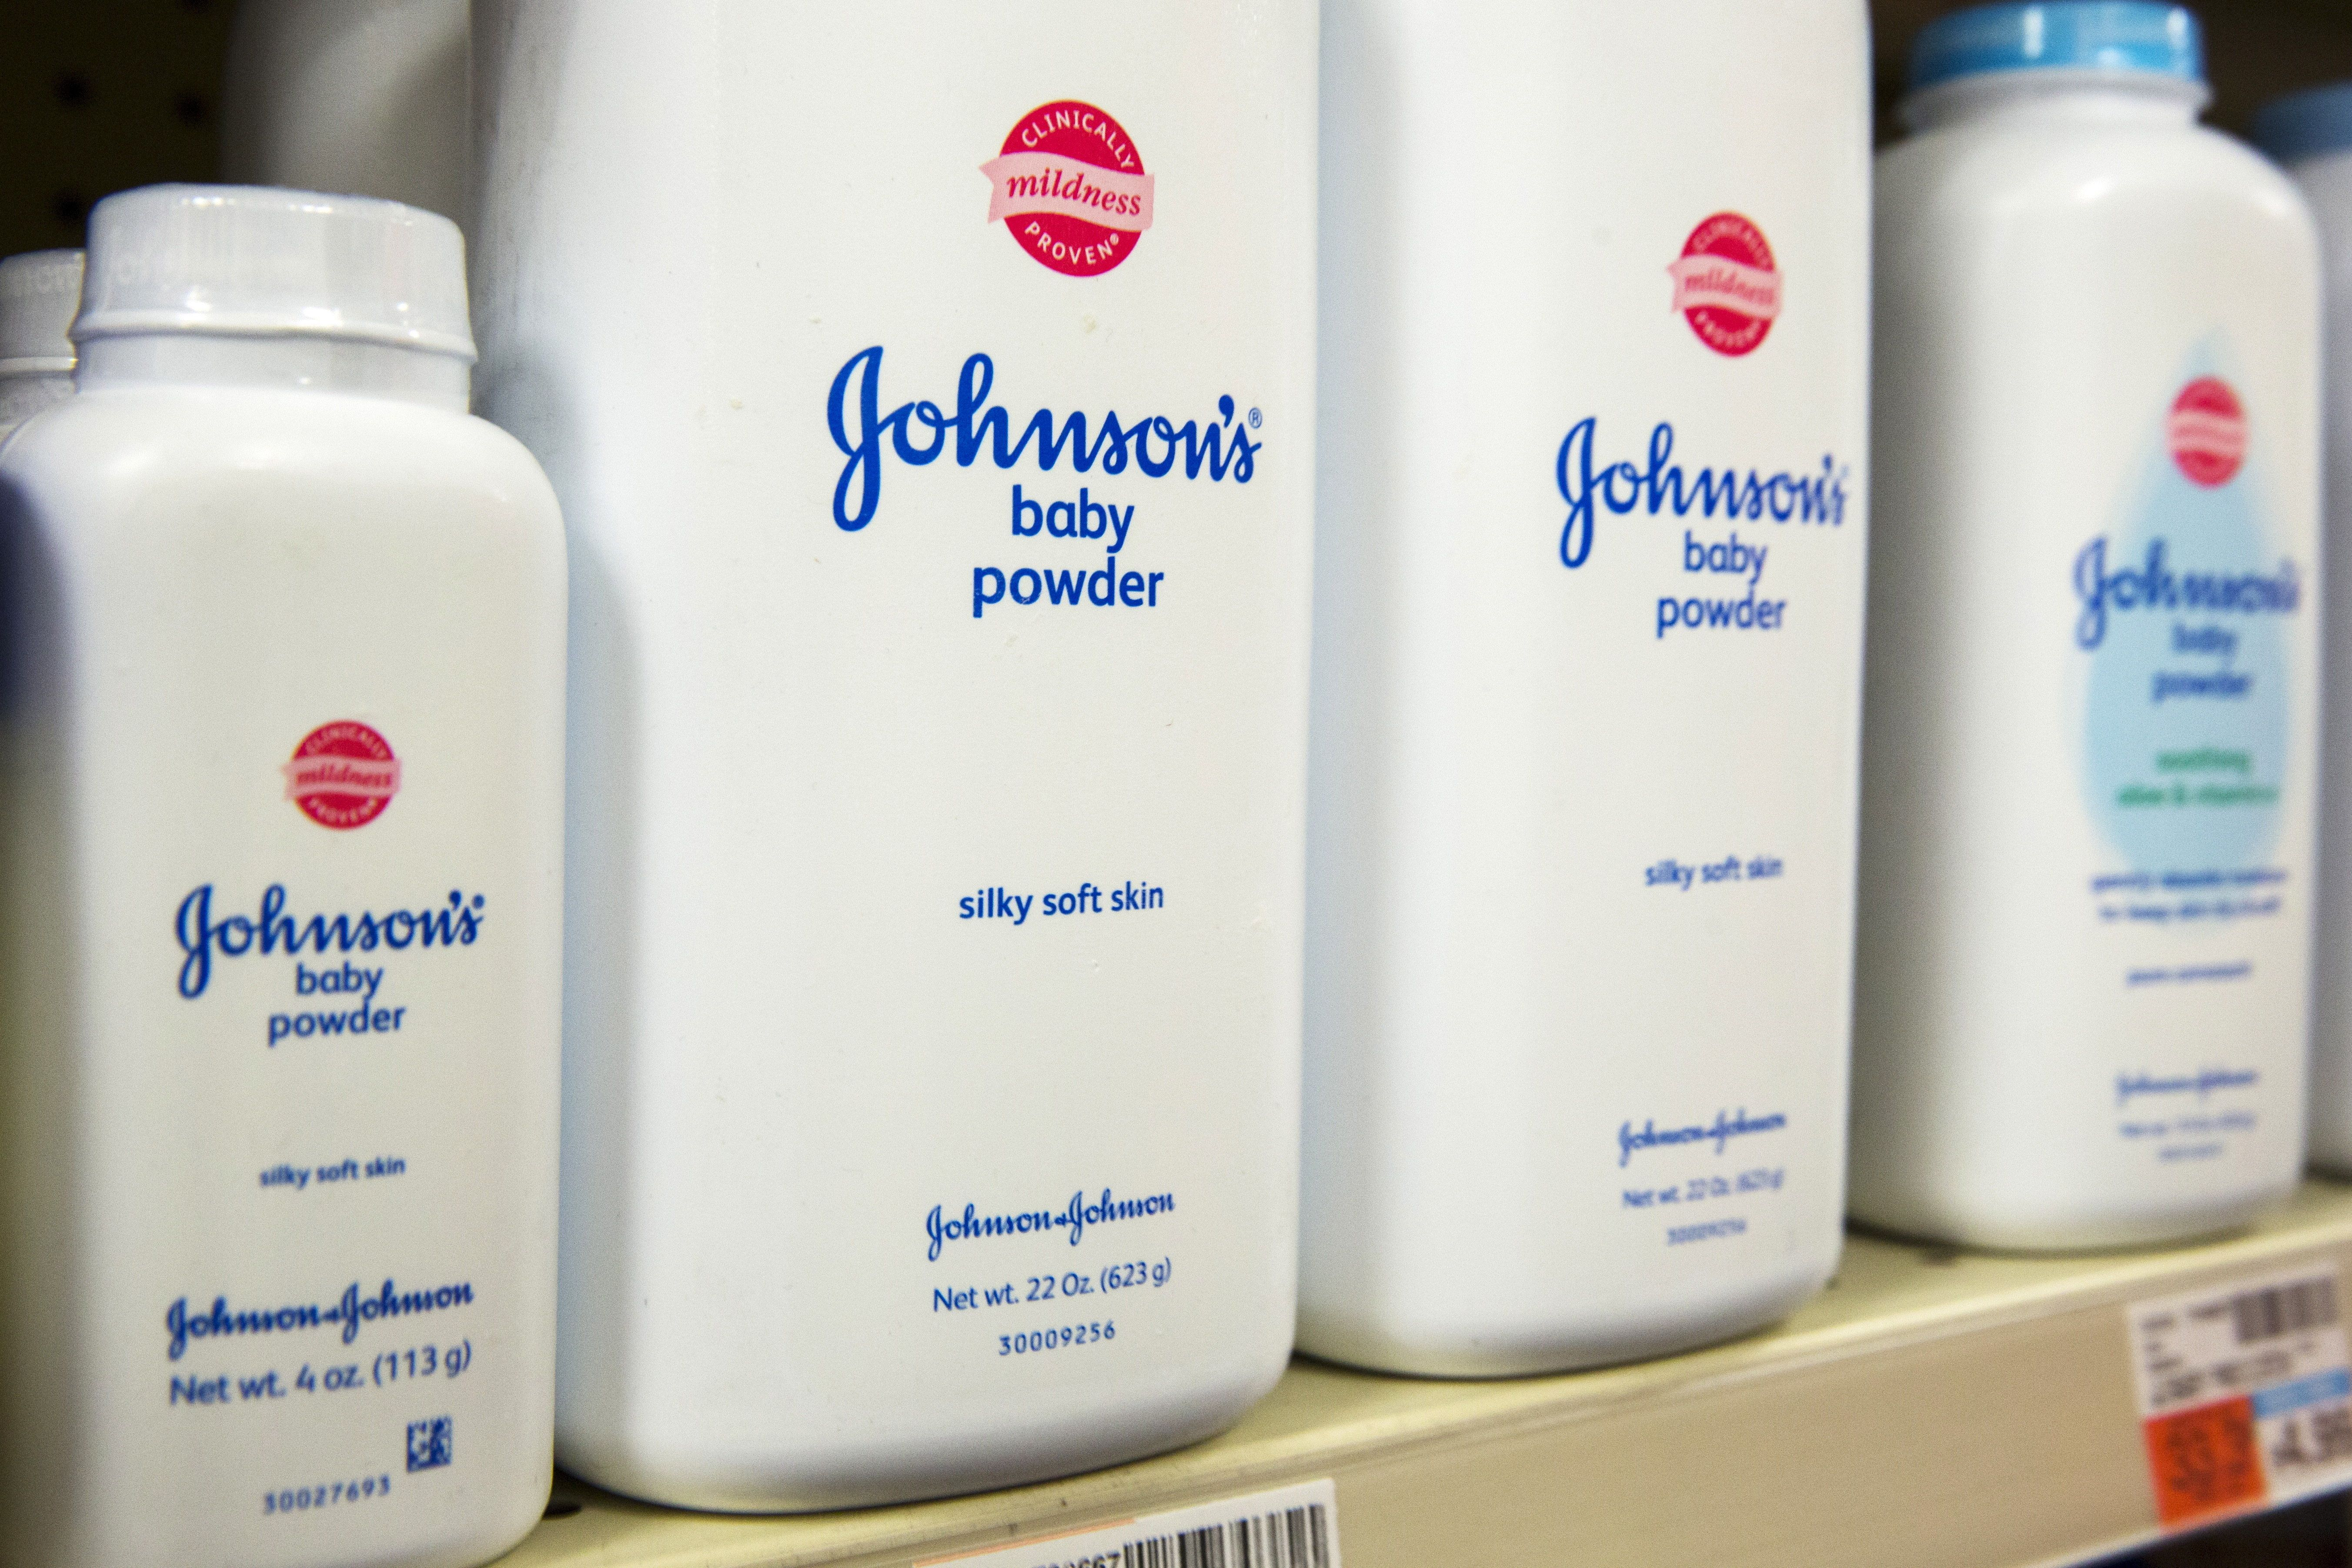 Cancer Patient Wins Record $417 Million Payout In Johnson & Johnson Talc